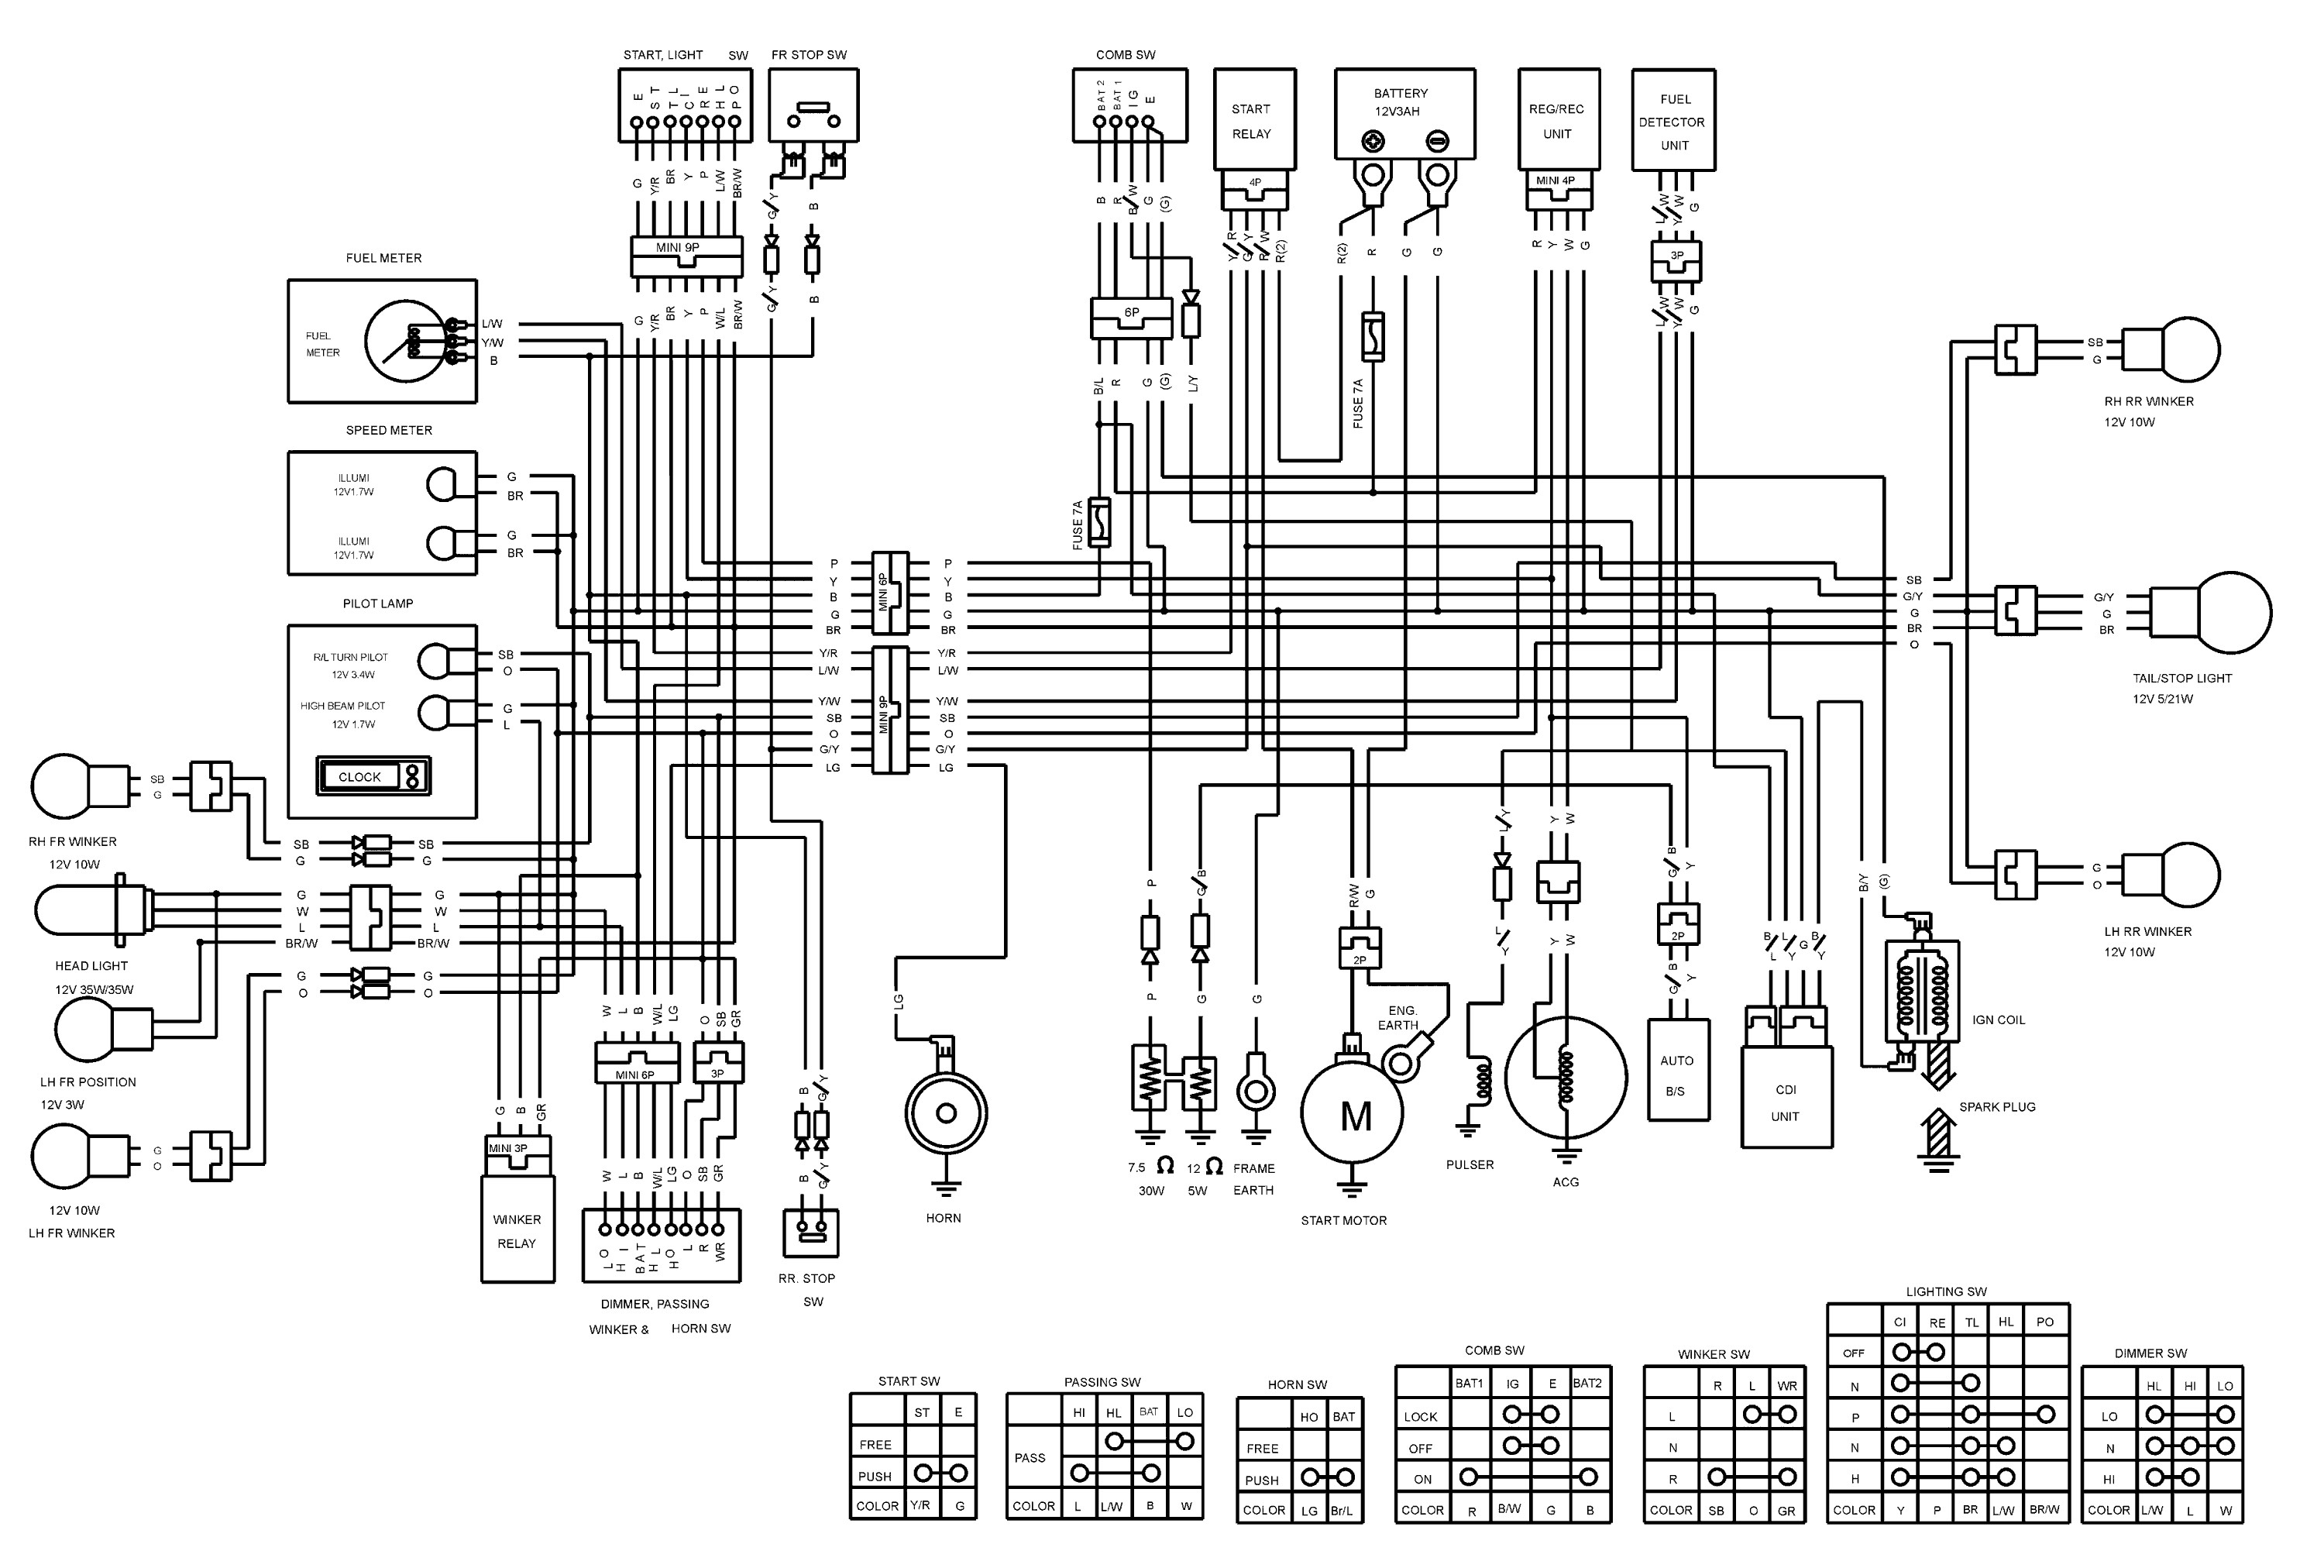 yamaha key switch wiring diagram download